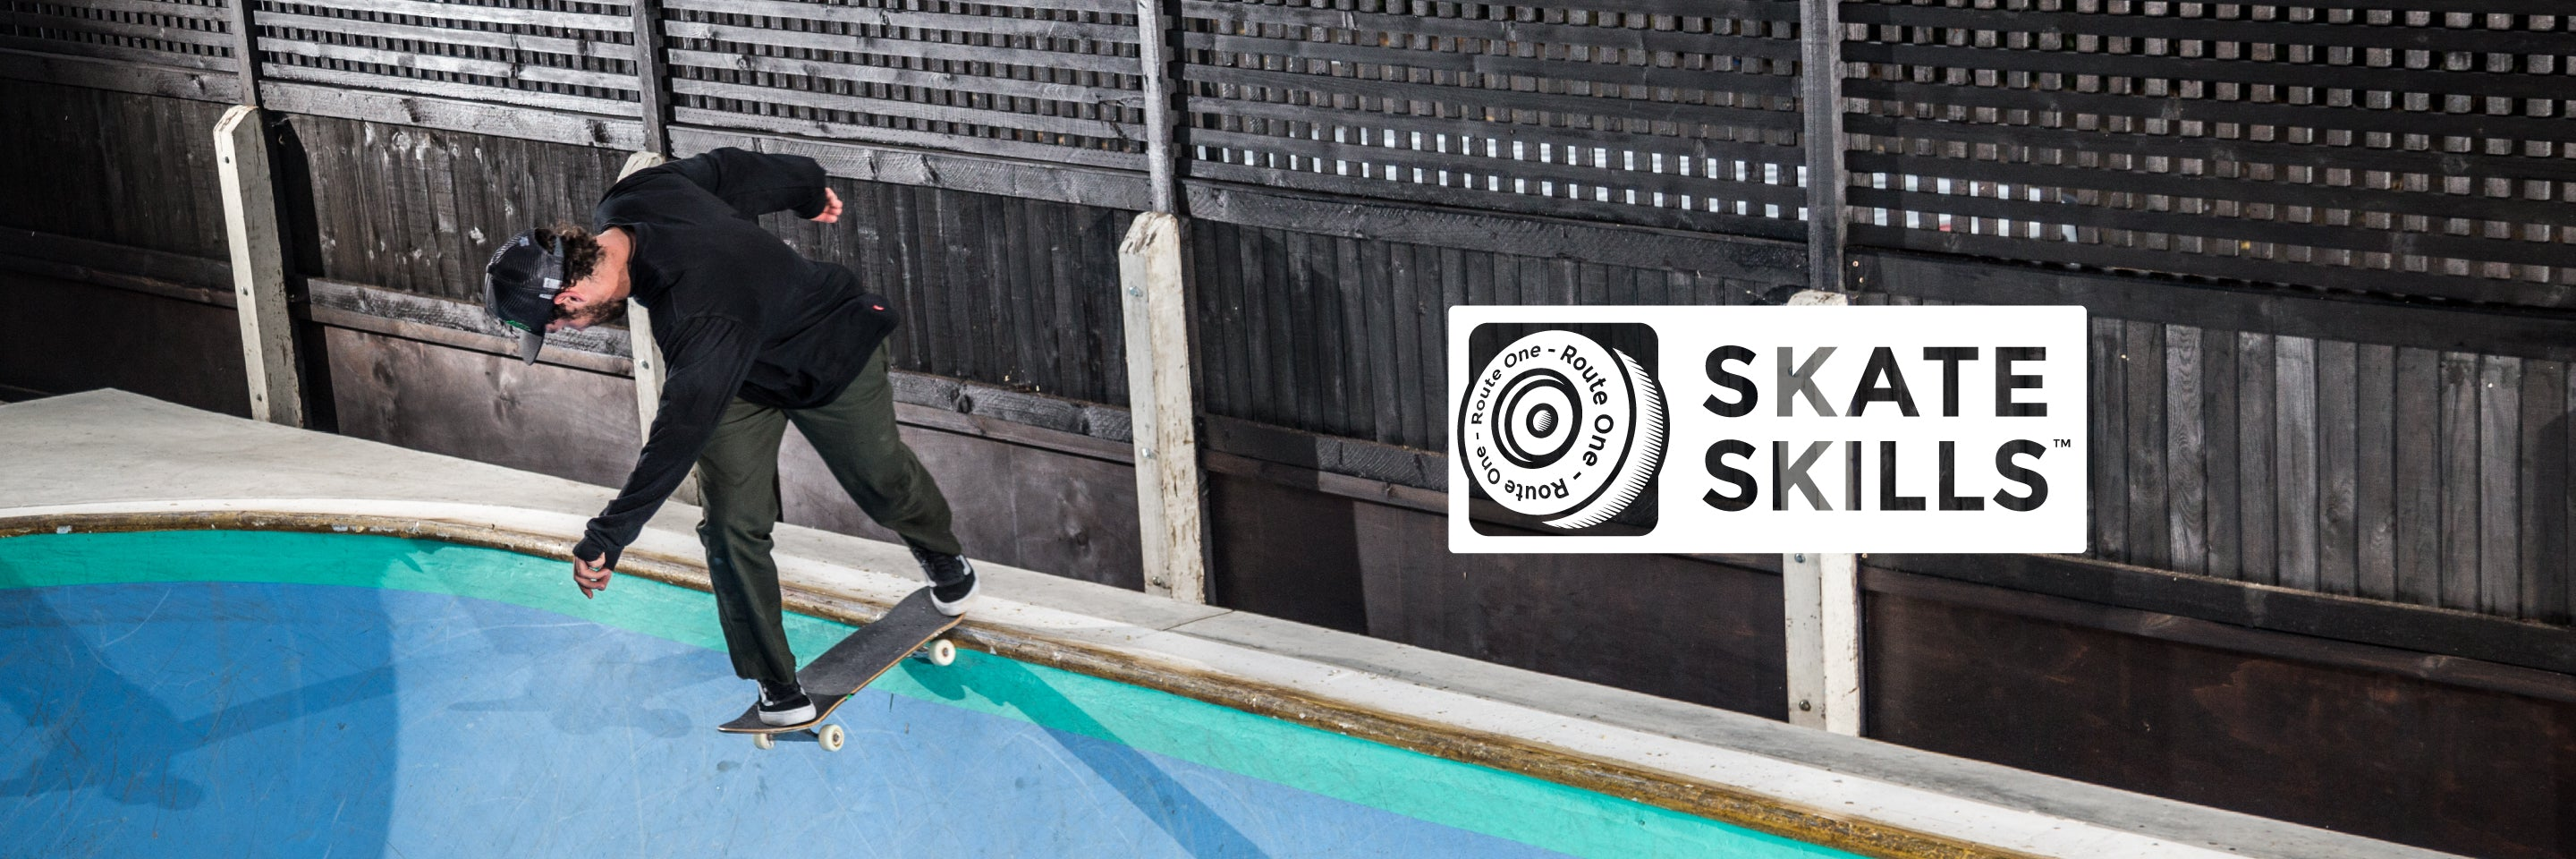 Lesson 1.3: Riding Up Transition To Fakie with Sam Beckett